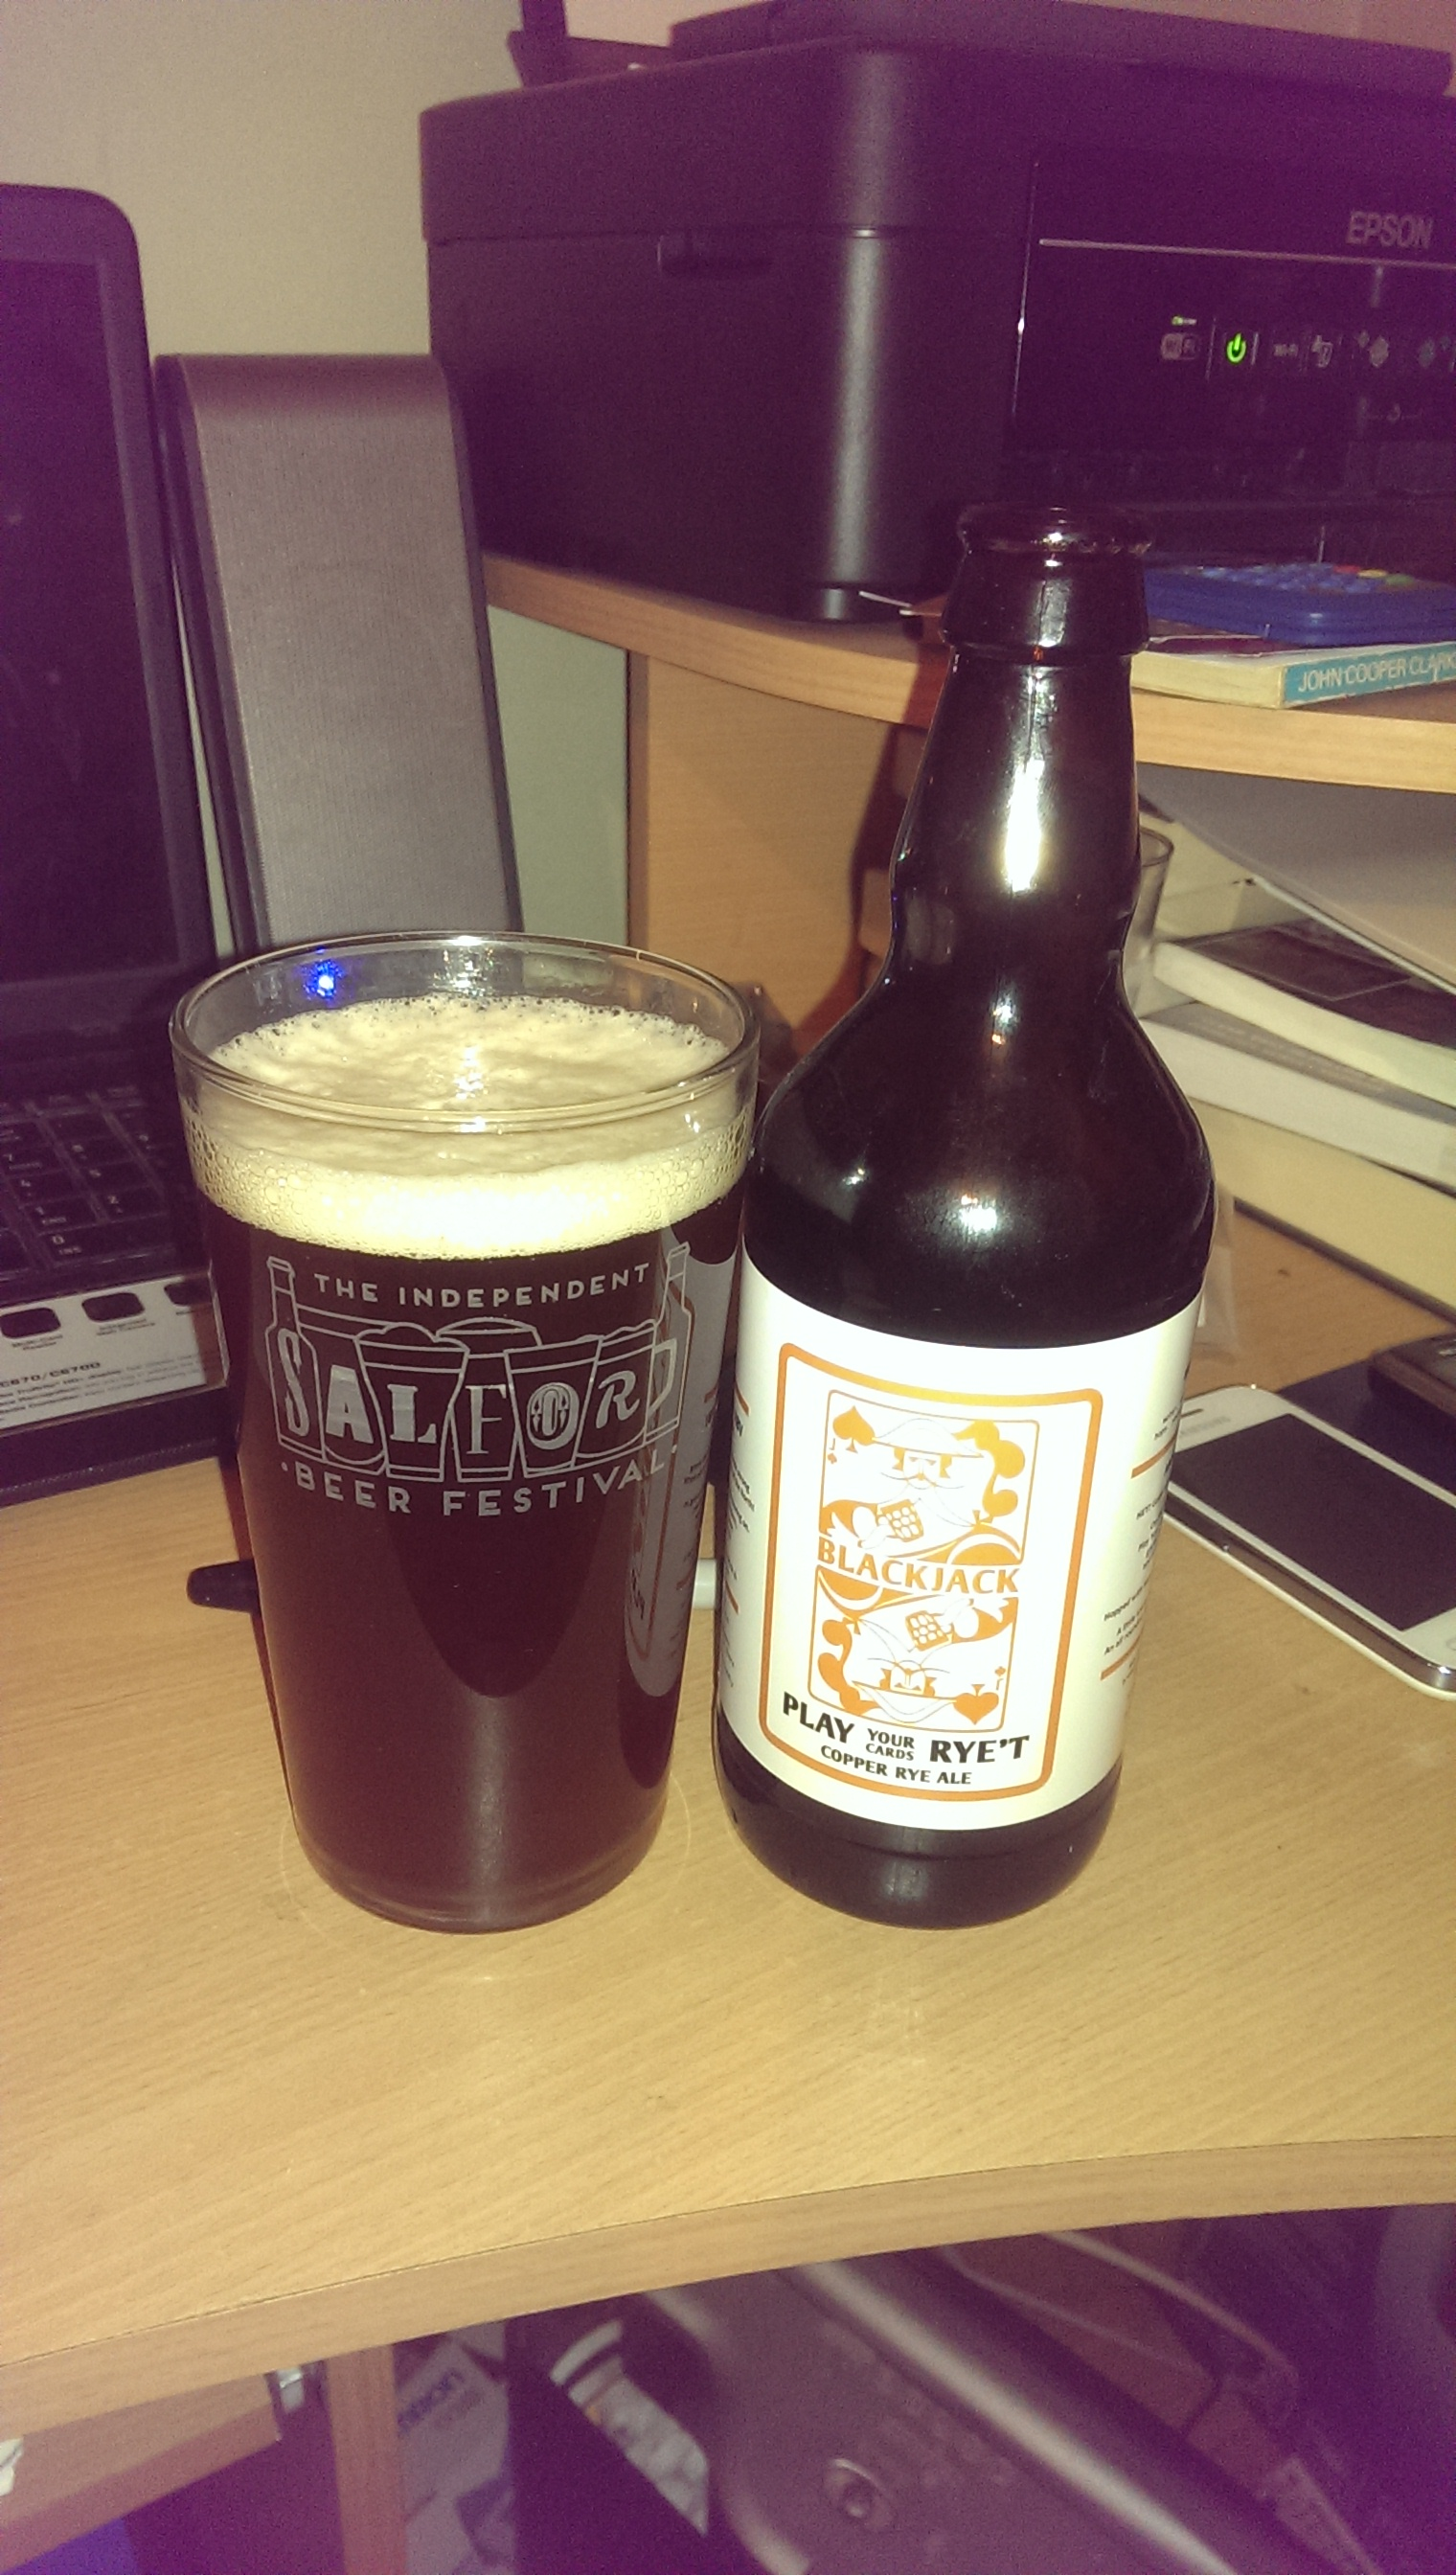 Play Your Cards Rye't – Black Jack Beers (Manchester) – 4.9% abv – Copper  Rye Ale – 500ml – Bottle (Heaton Moor)